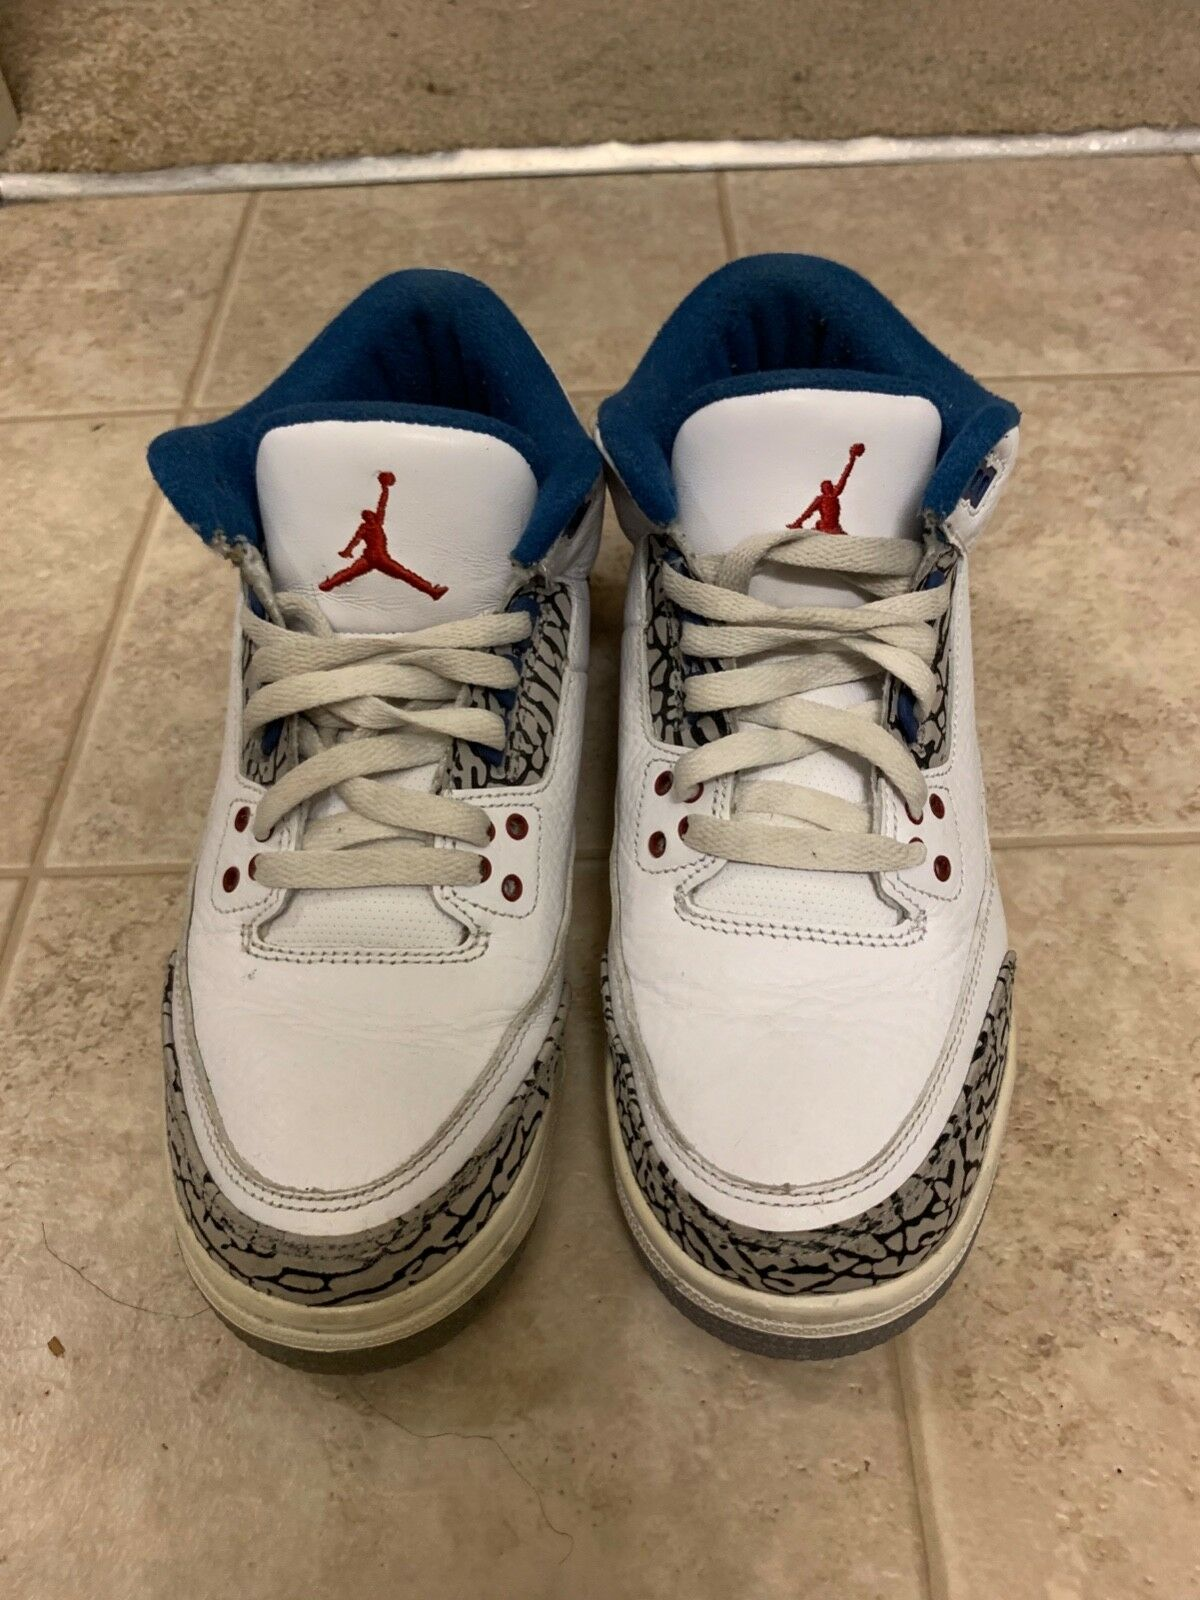 Nike air jordan retro 3 true blueee size 7